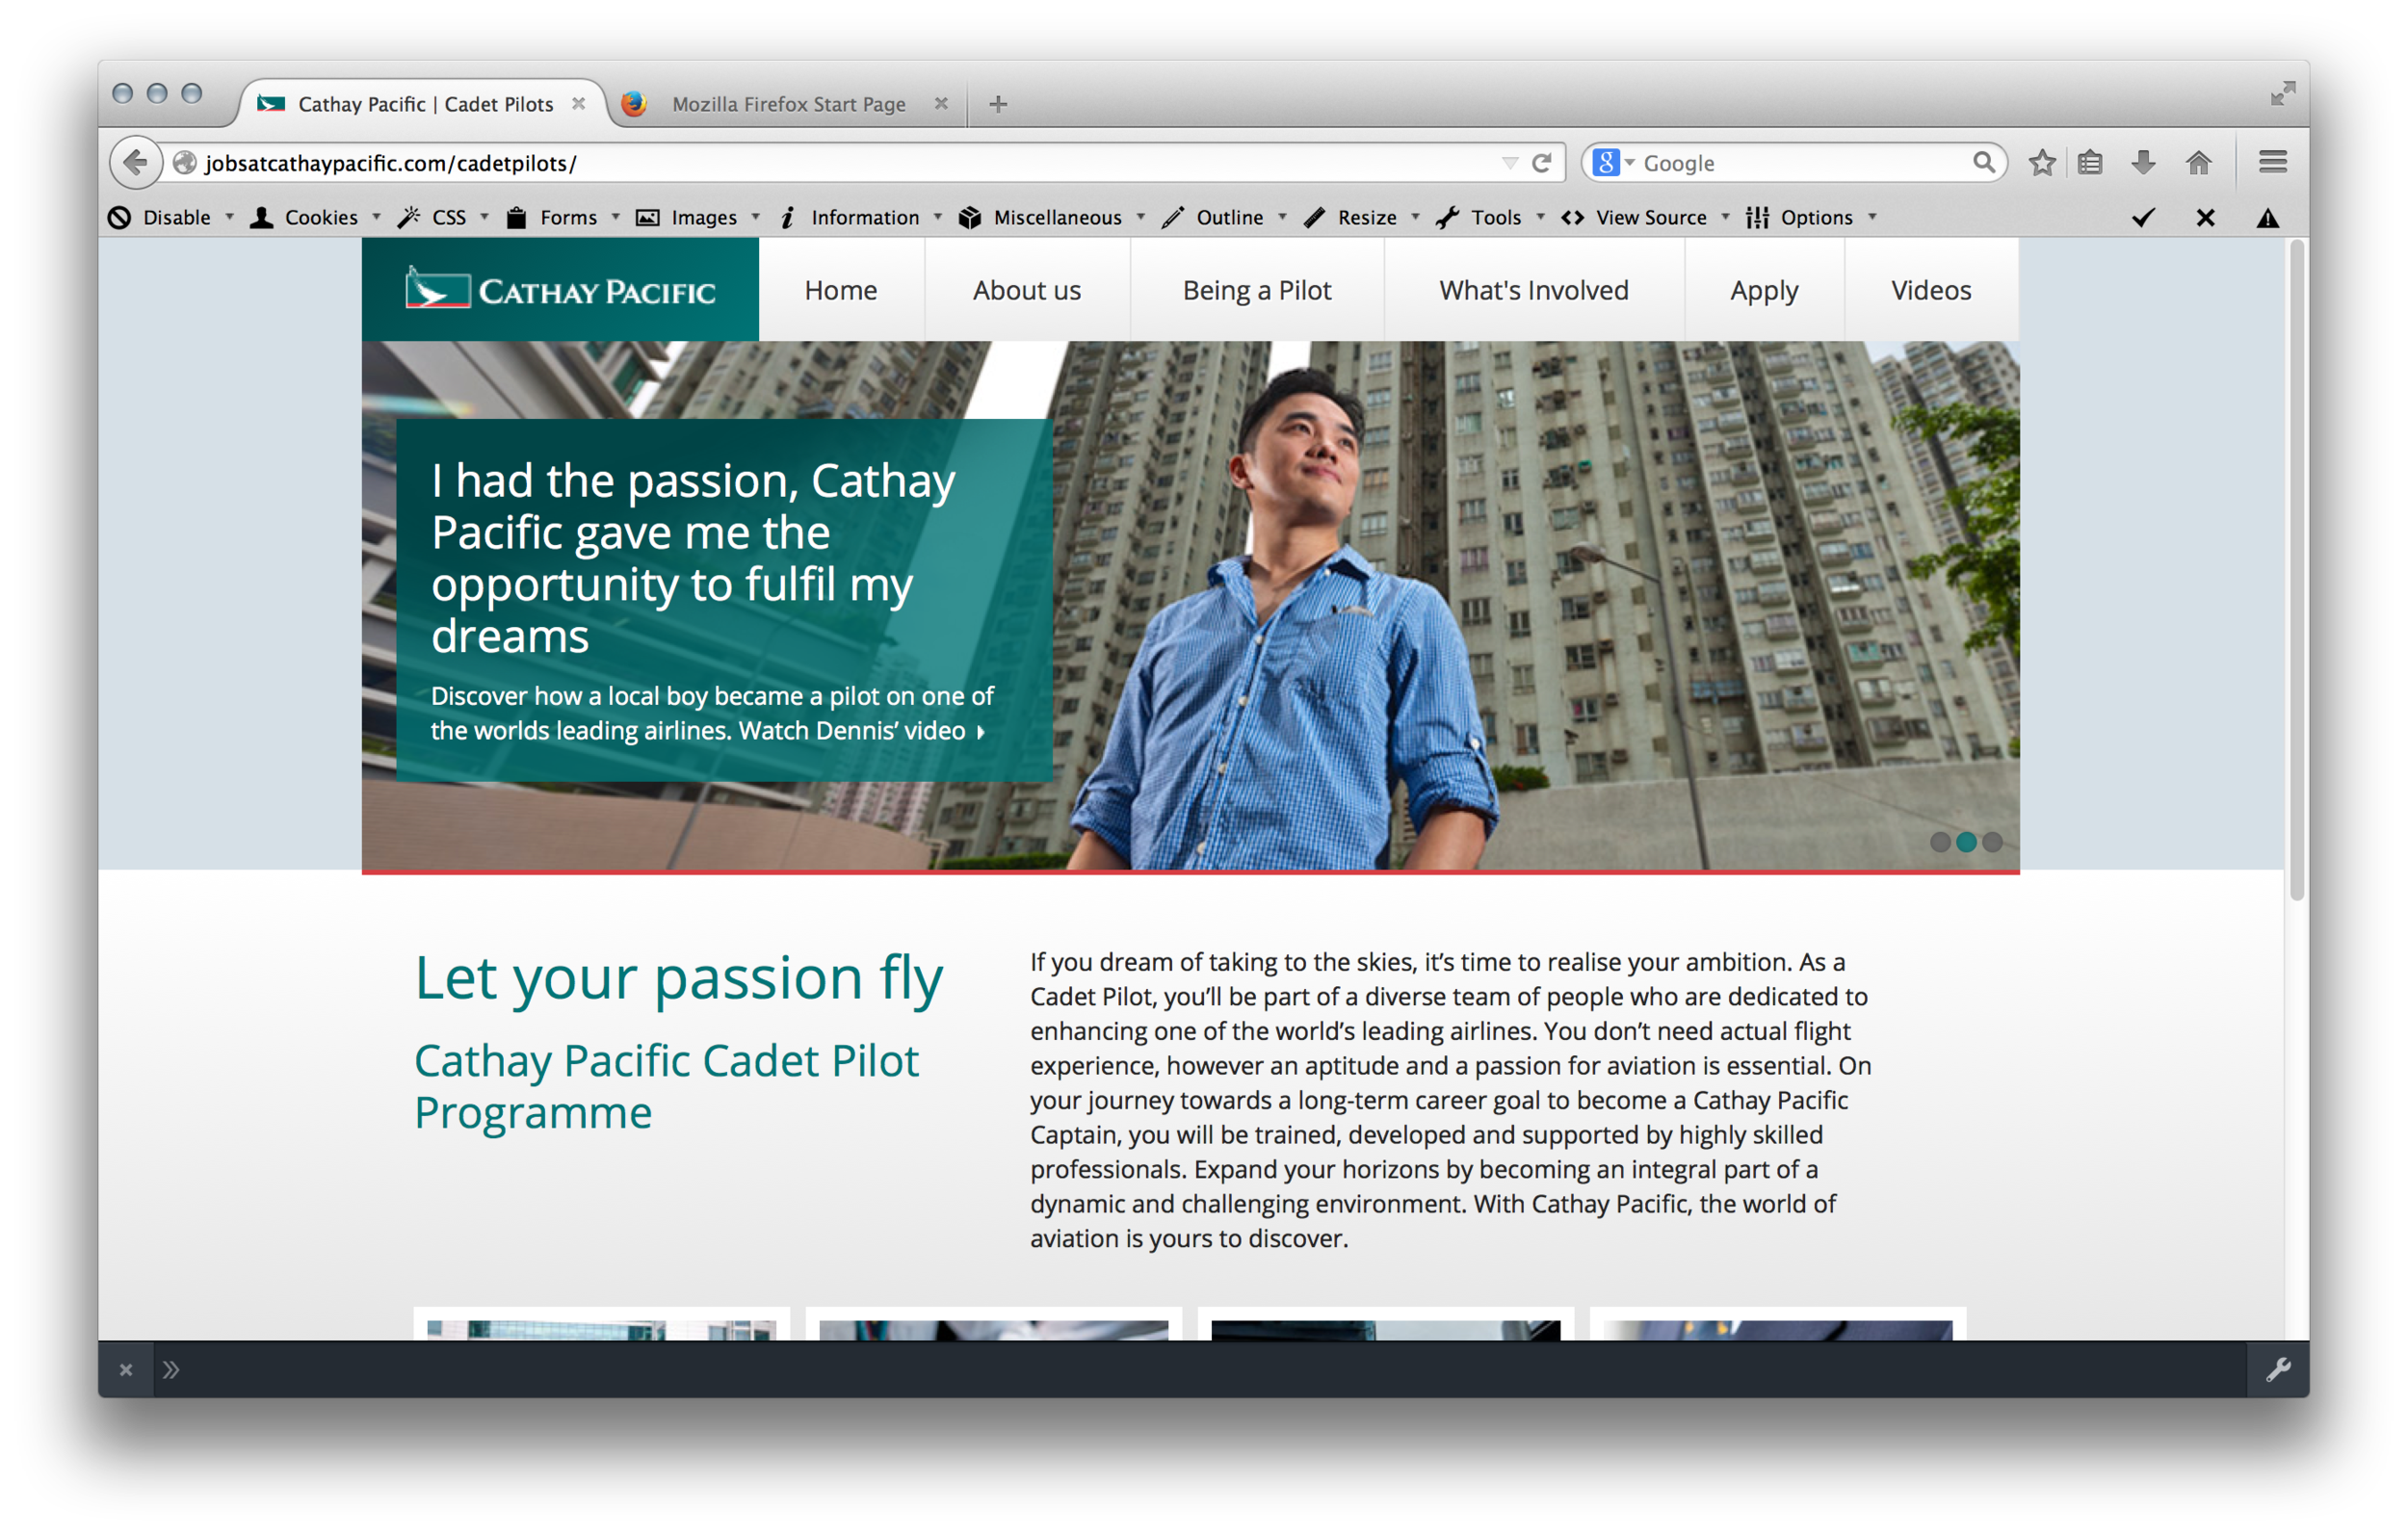 Cathay Pacific Cadet Pilot